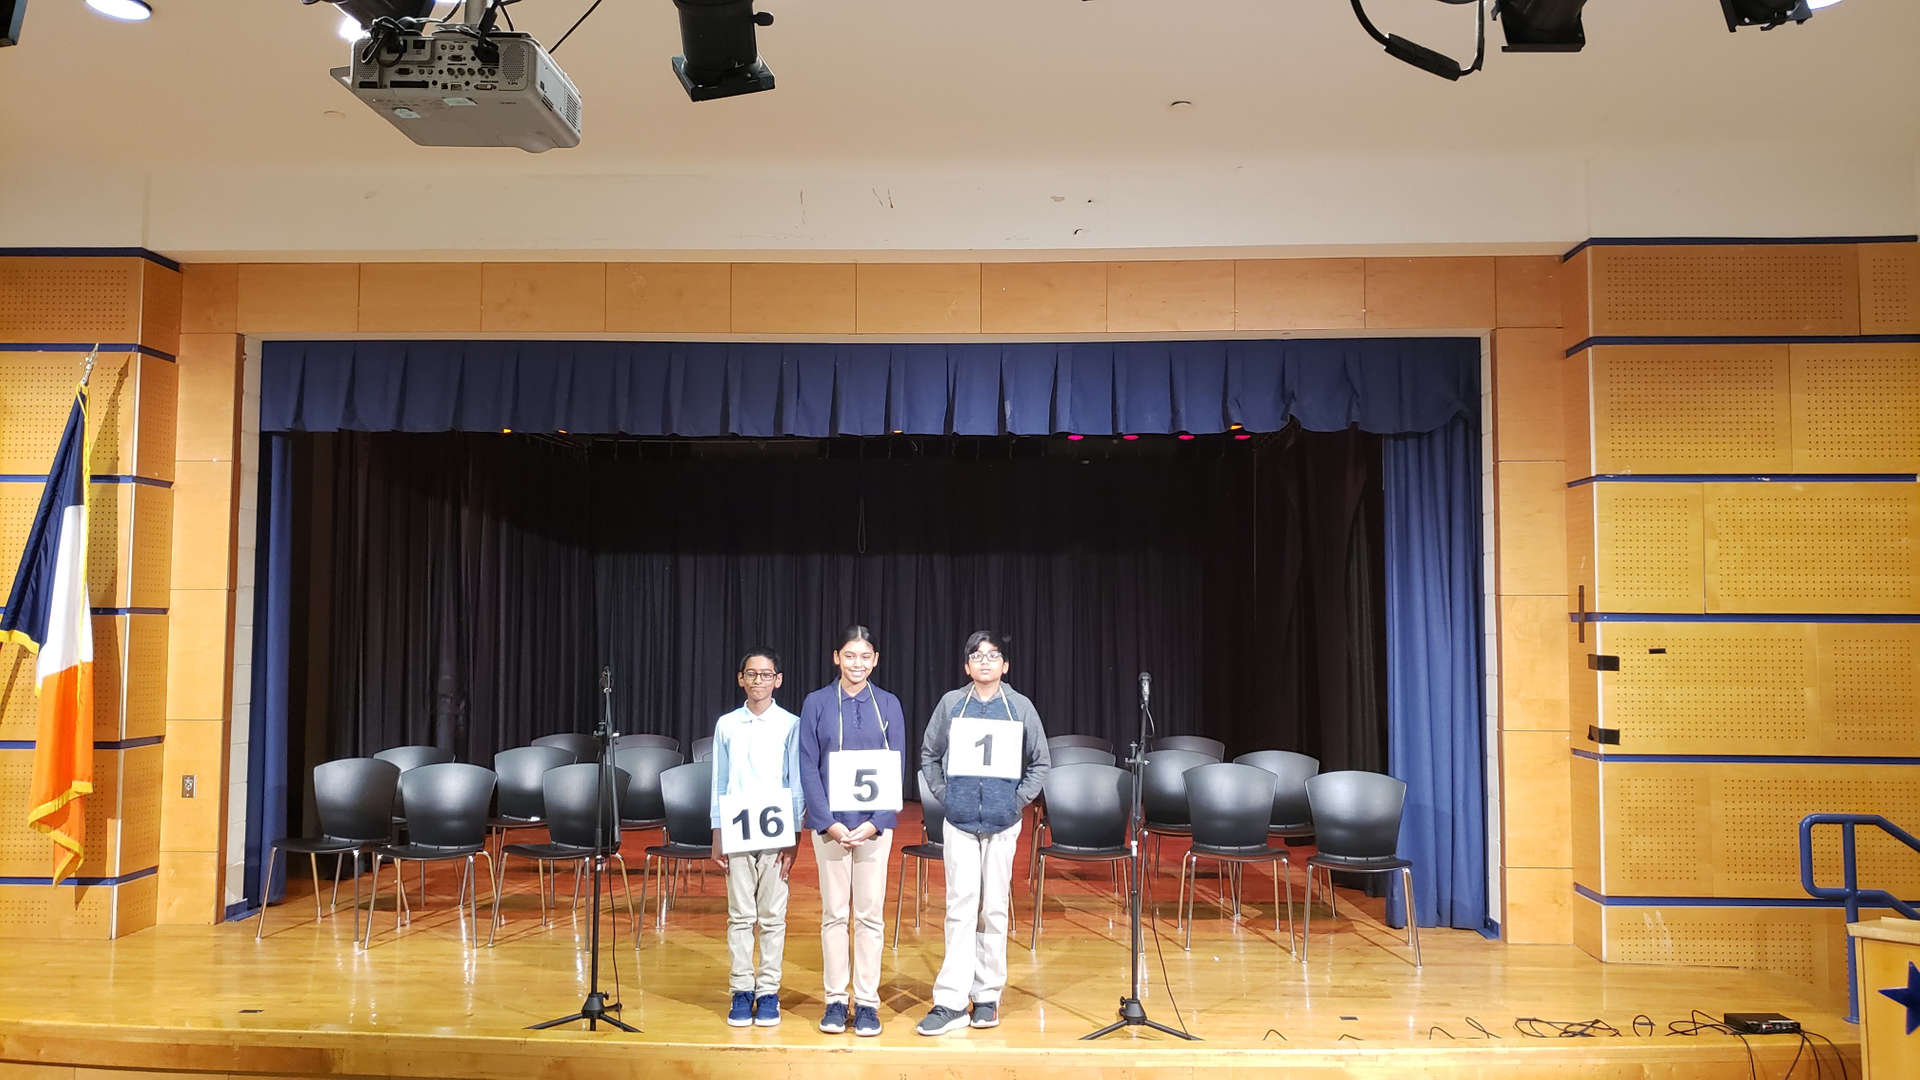 three students finalist stand on stage after winning the school-wide spelling bee